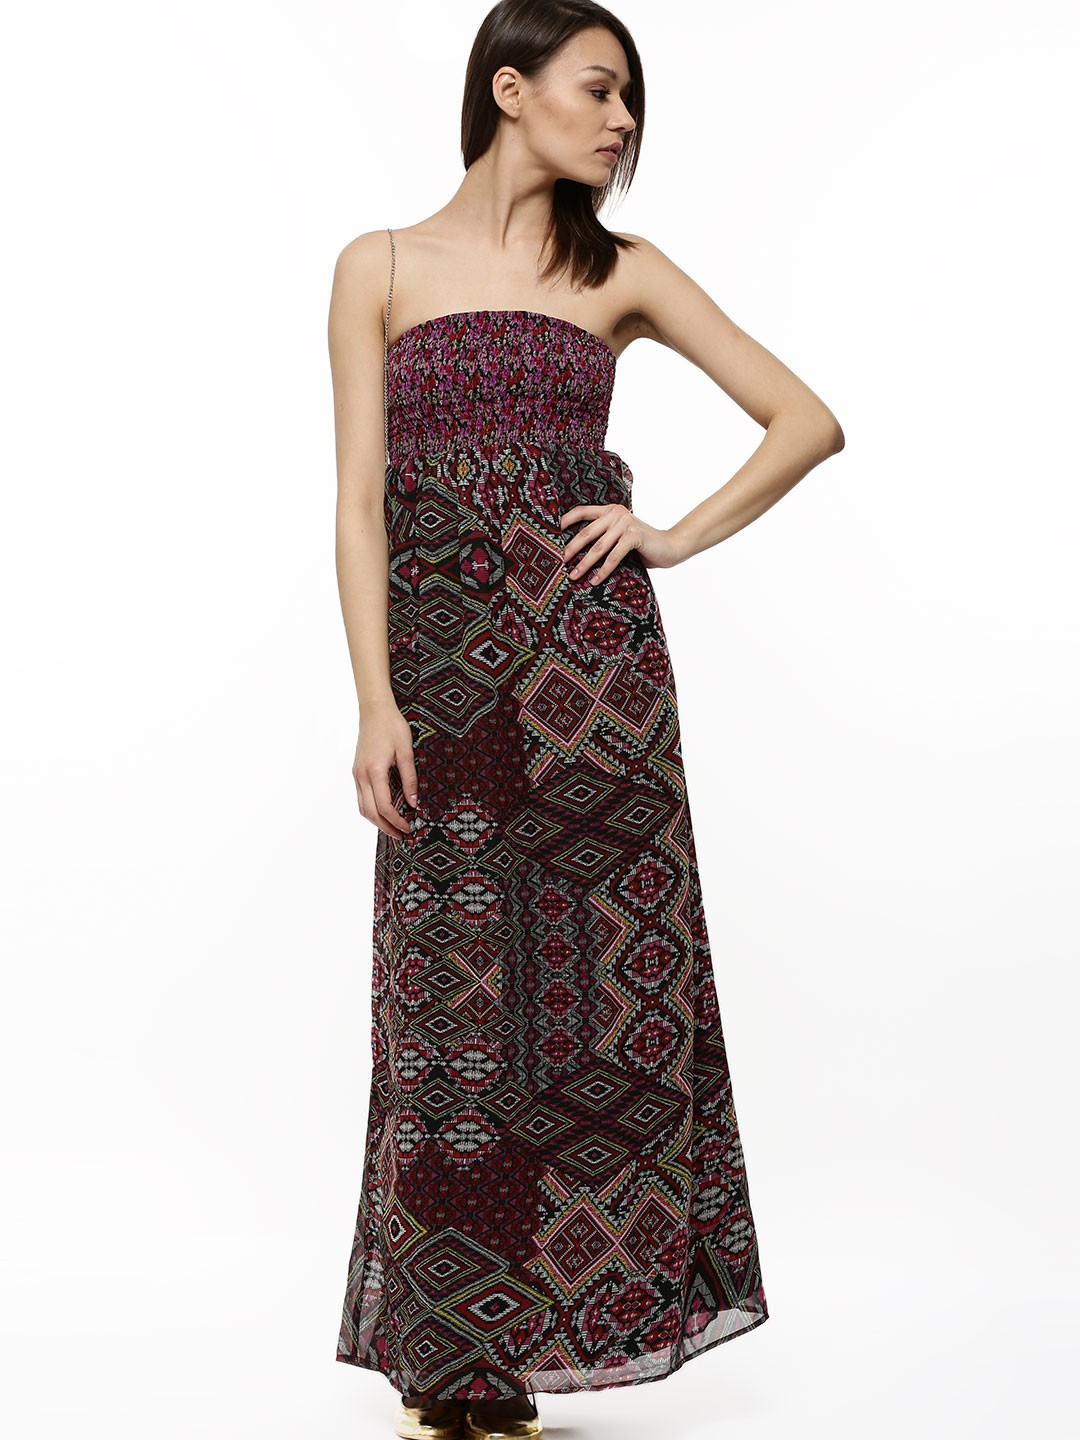 Unique Maxi Dresses Online India  Buy Maxi Dresses For Women Online In